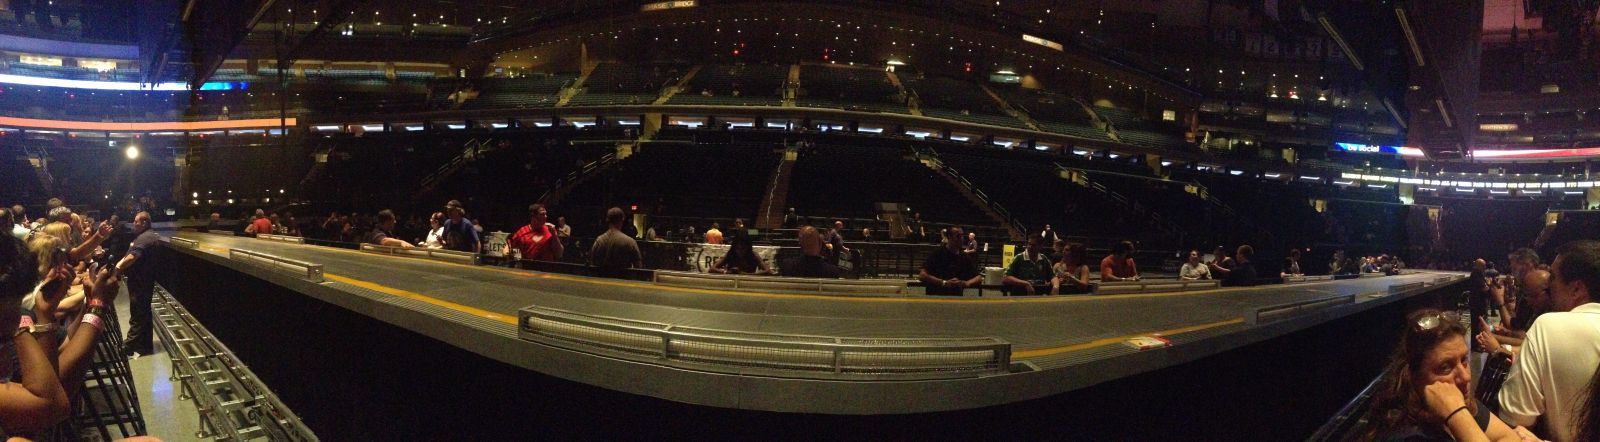 Panorama from the rail